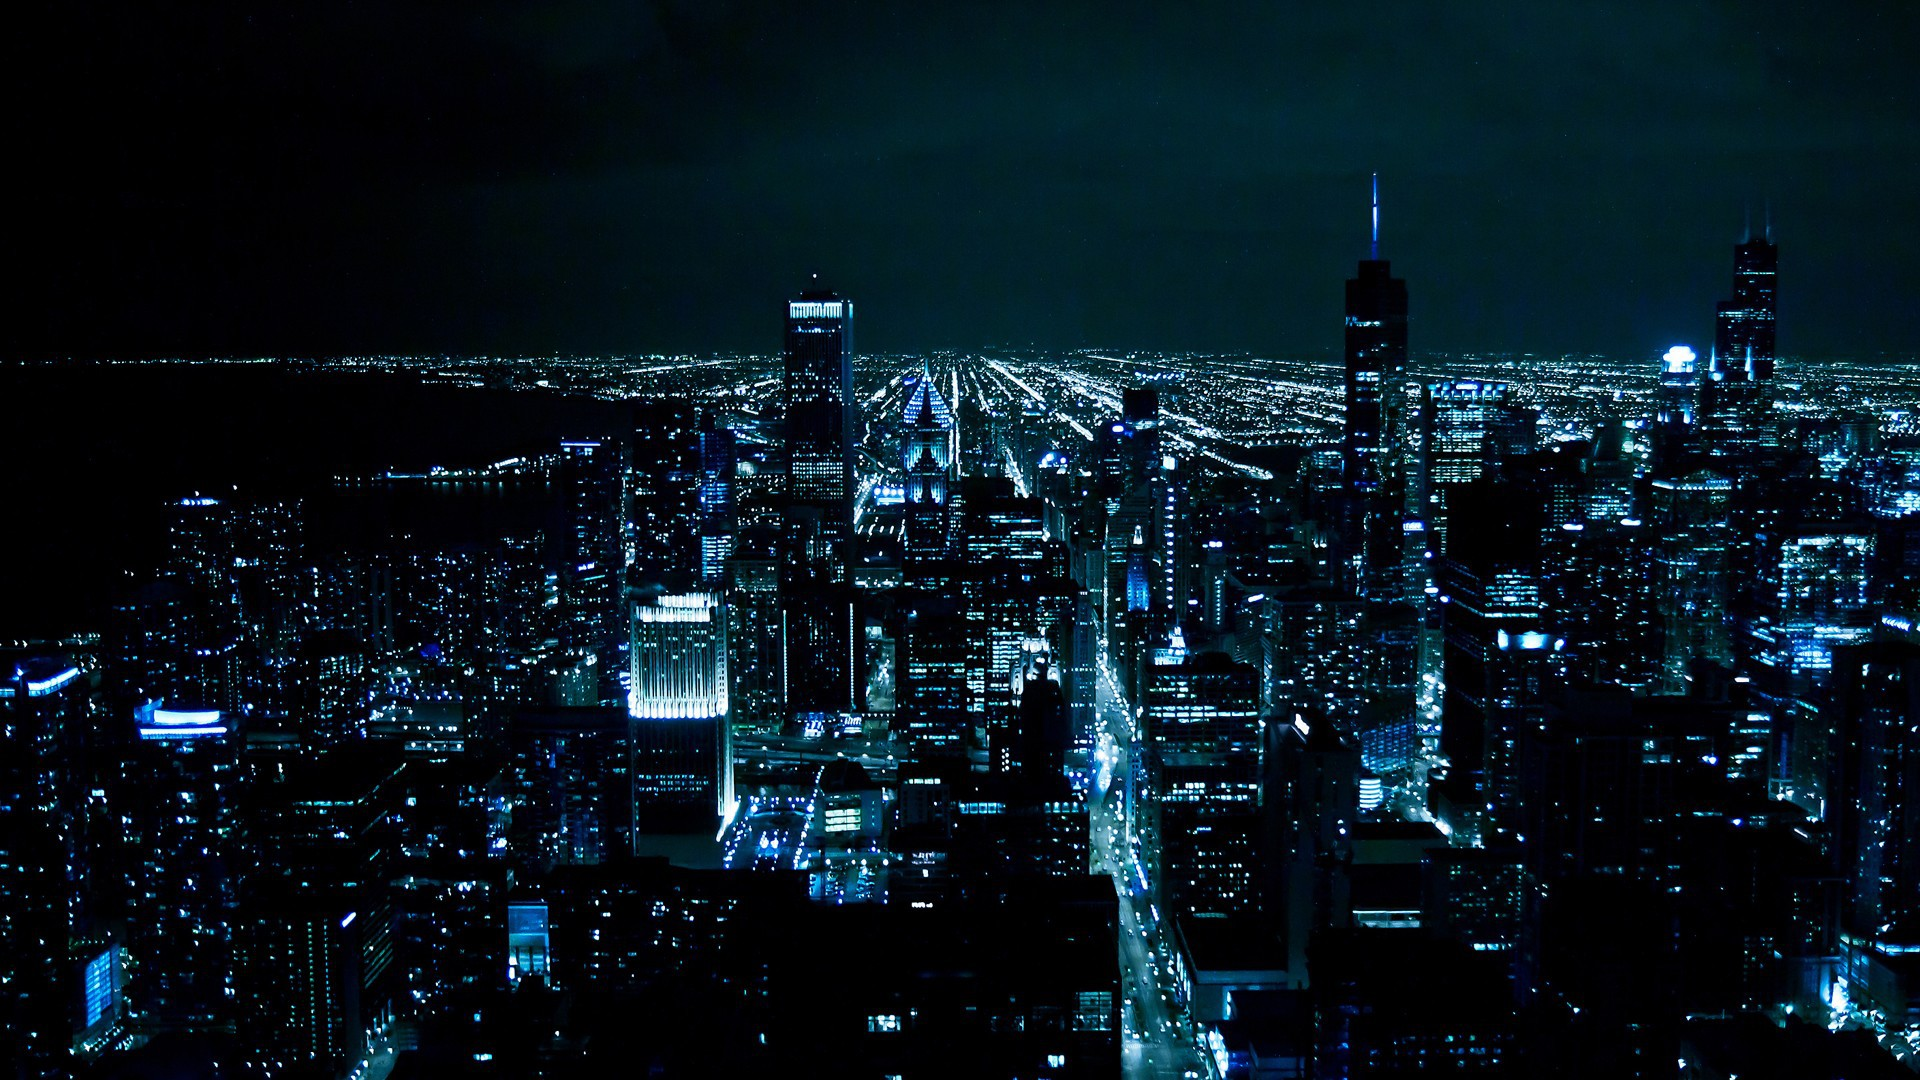 Night Night city Chicago Skyscraper wallpapers and images 1920x1080